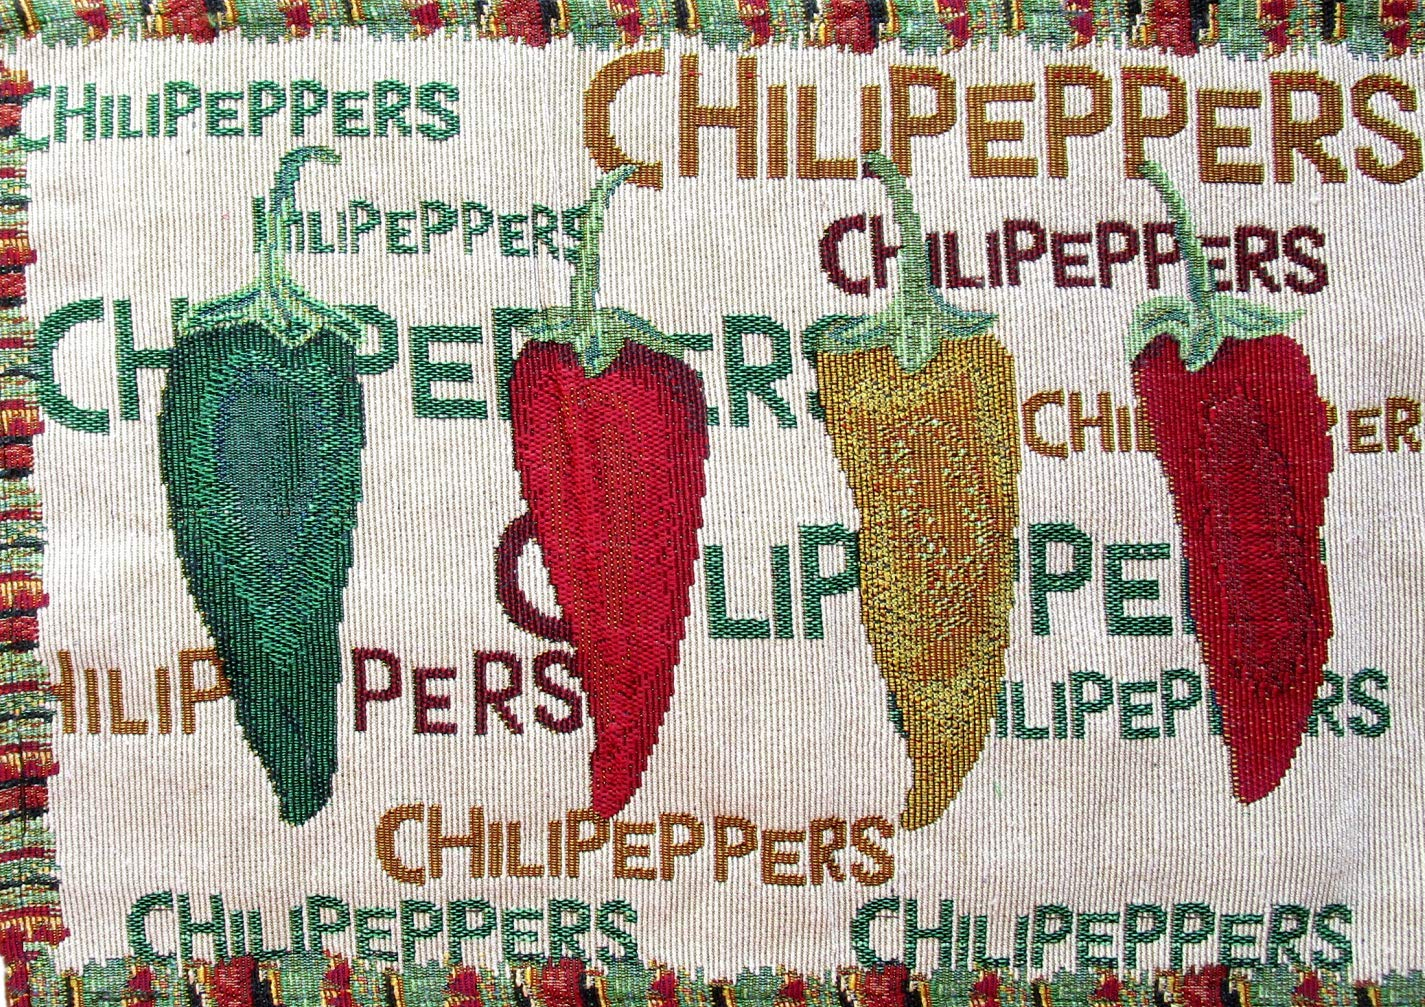 Everyday Woven Tapestry Place Mats - Set of 4 (Red, Green, and Yellow Chili Peppers with Border) by Everyday (Image #2)